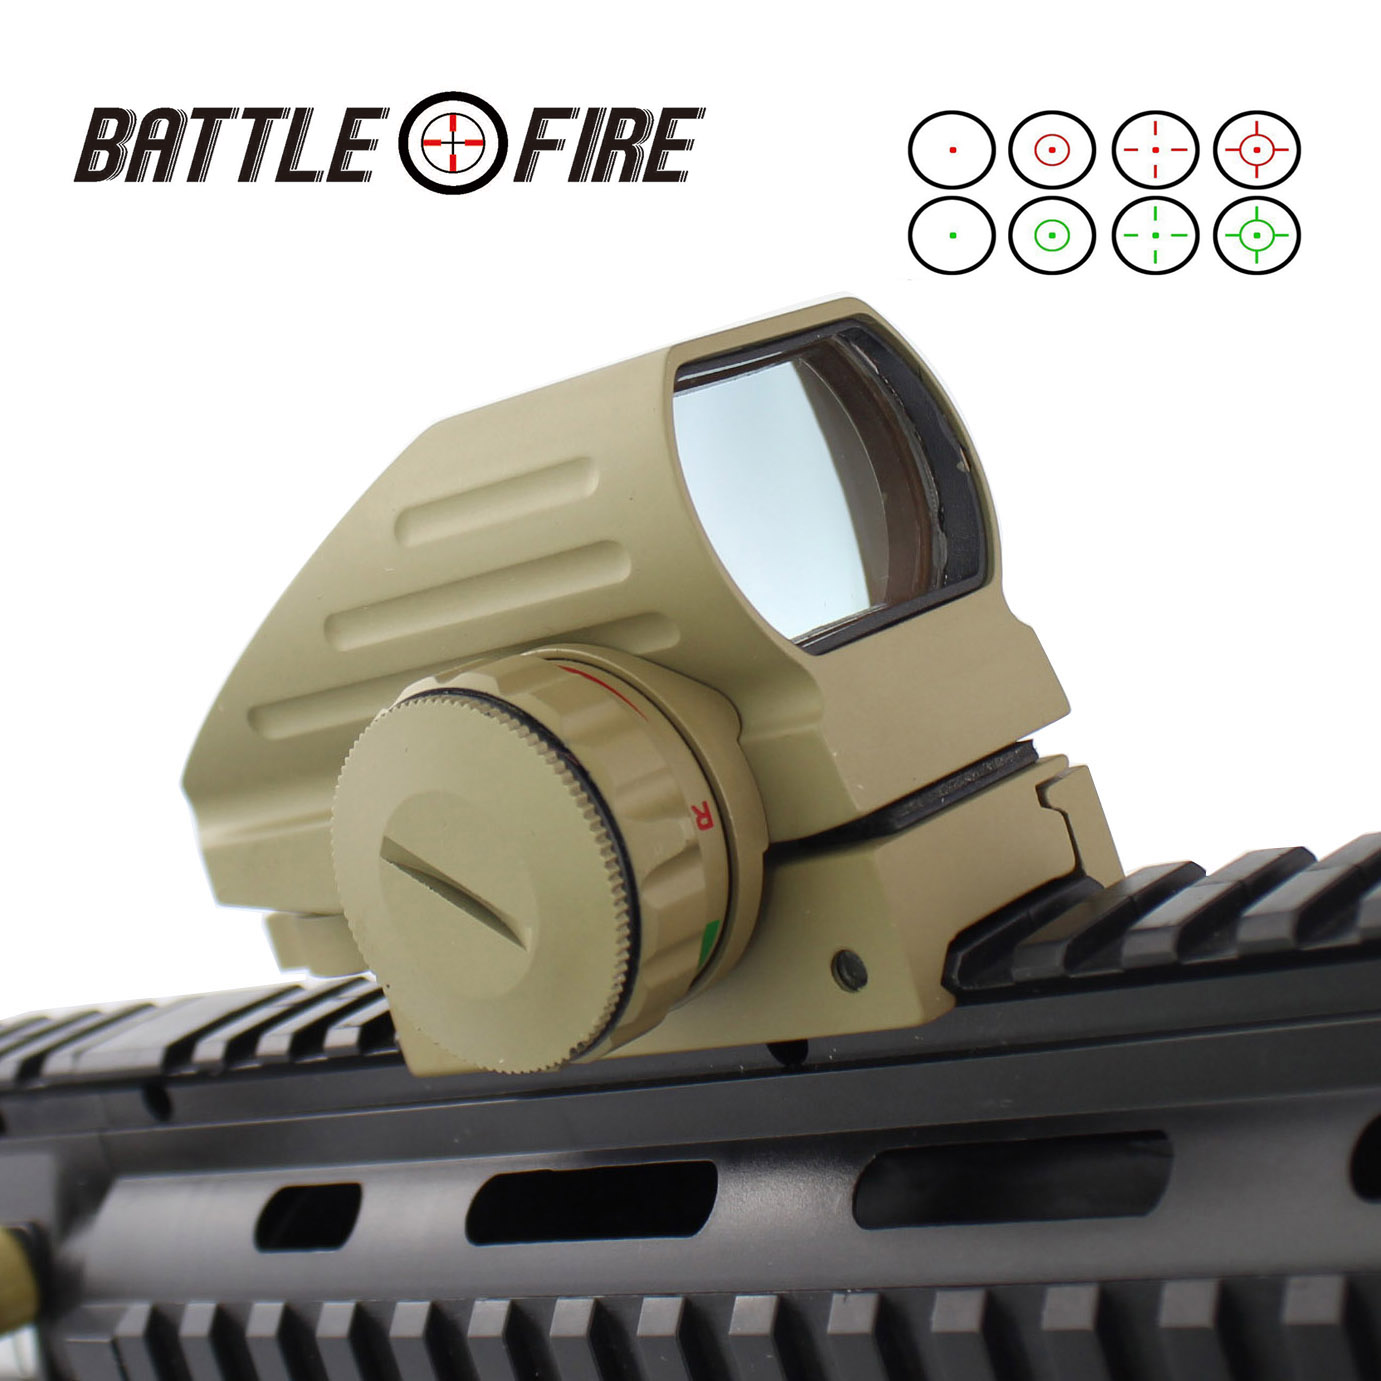 New 1X33  Collimator Sight For Hunting Rifle Scope Holographic Reflex 4 Reticles  Red Dot Sight Tactical Riflescope Tan Color